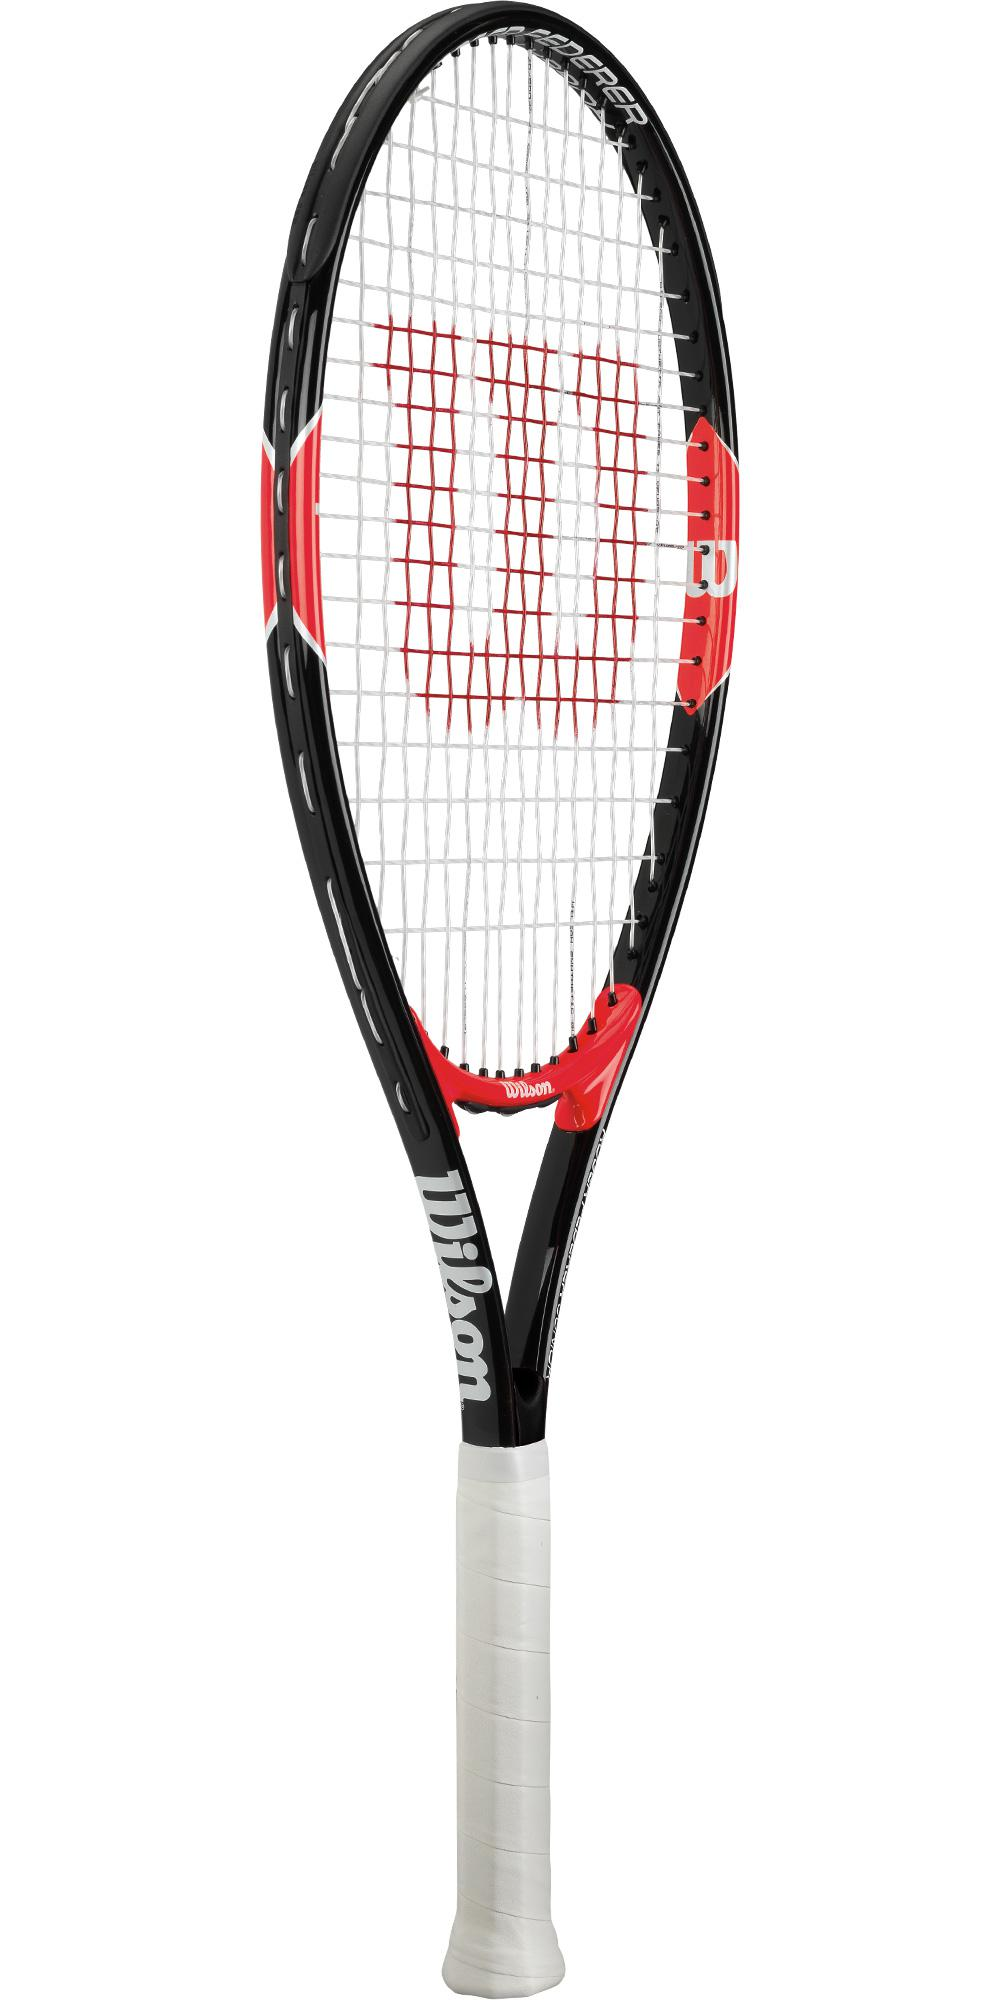 Wilson Roger Federer 26 Inch Junior Tennis Racket ... | 1000 x 2000 jpeg 113kB